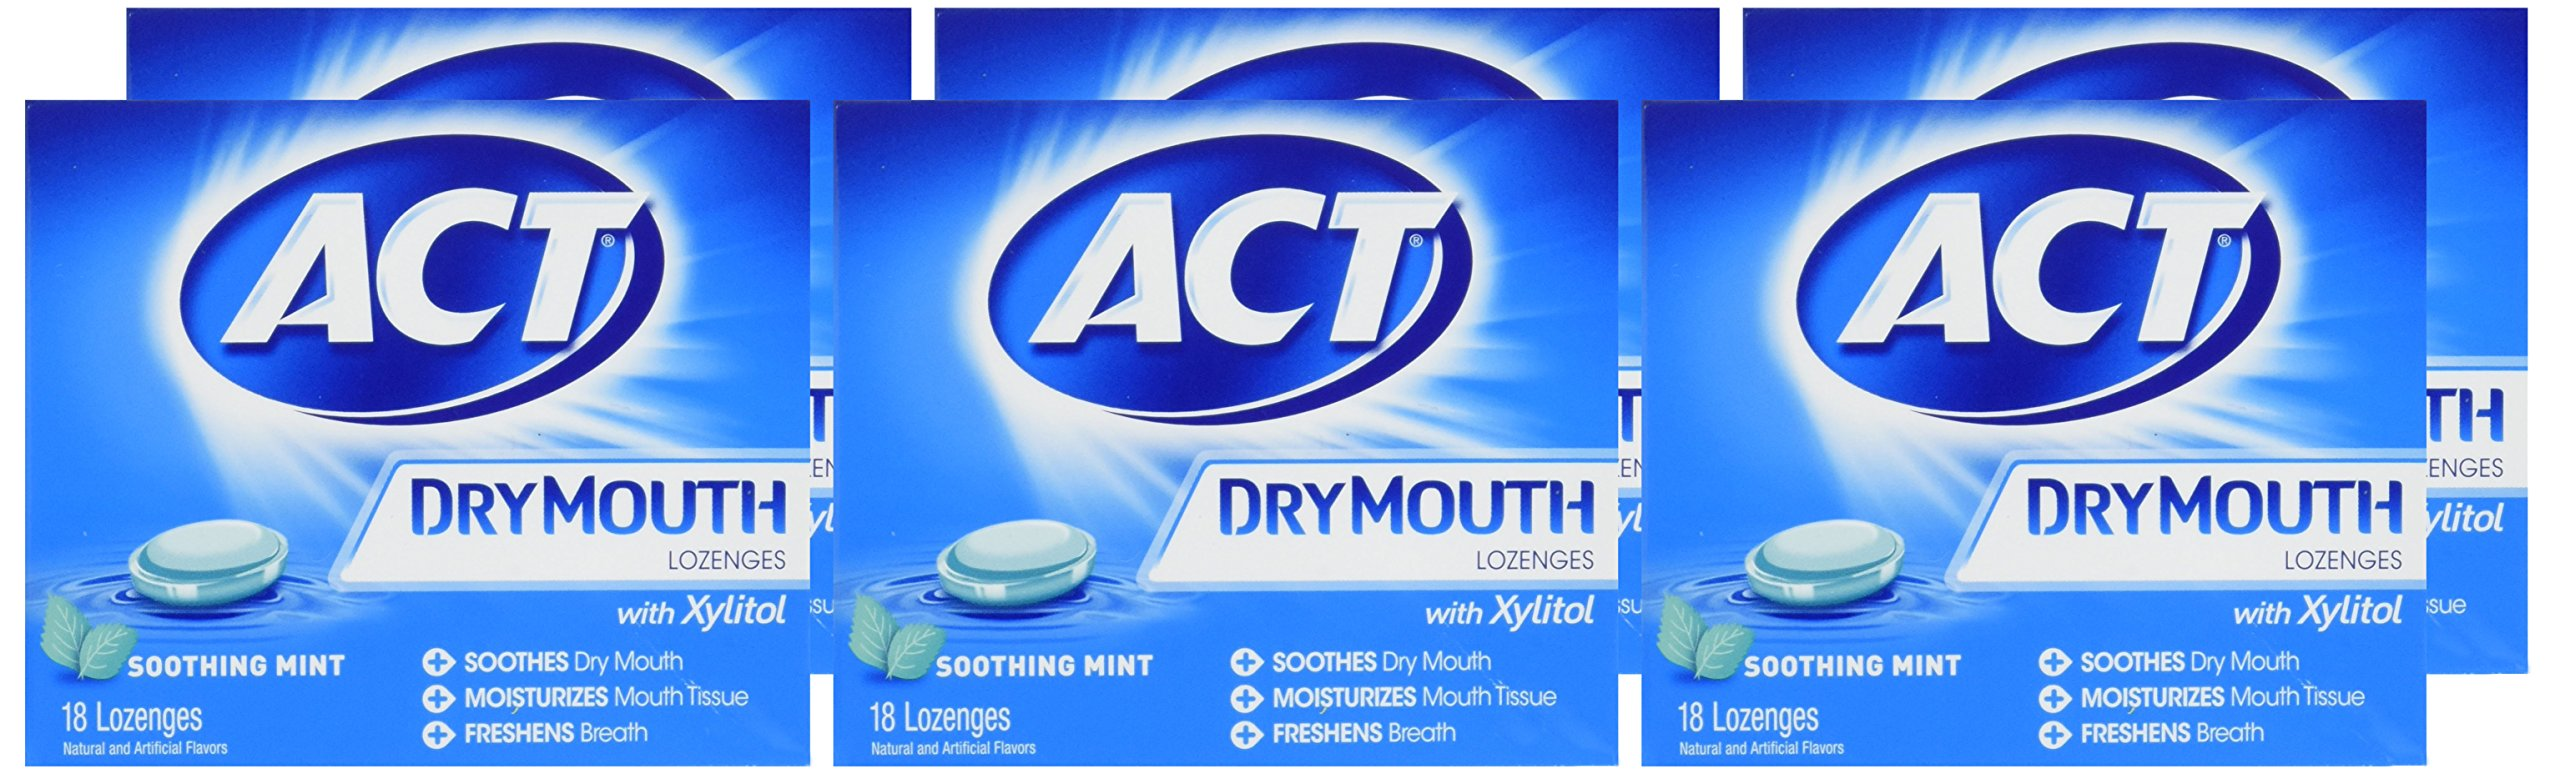 ACT Total Care, Dry Mouth Lozenges, 18 Count (Pack of 6), Soothing Mint Flavored Lozenges with Xylitol Help Moisturize Mouth Tissue to Sooth and Relieve Discomfort from Dry Mouth, Freshens Breath by ACT (Image #3)